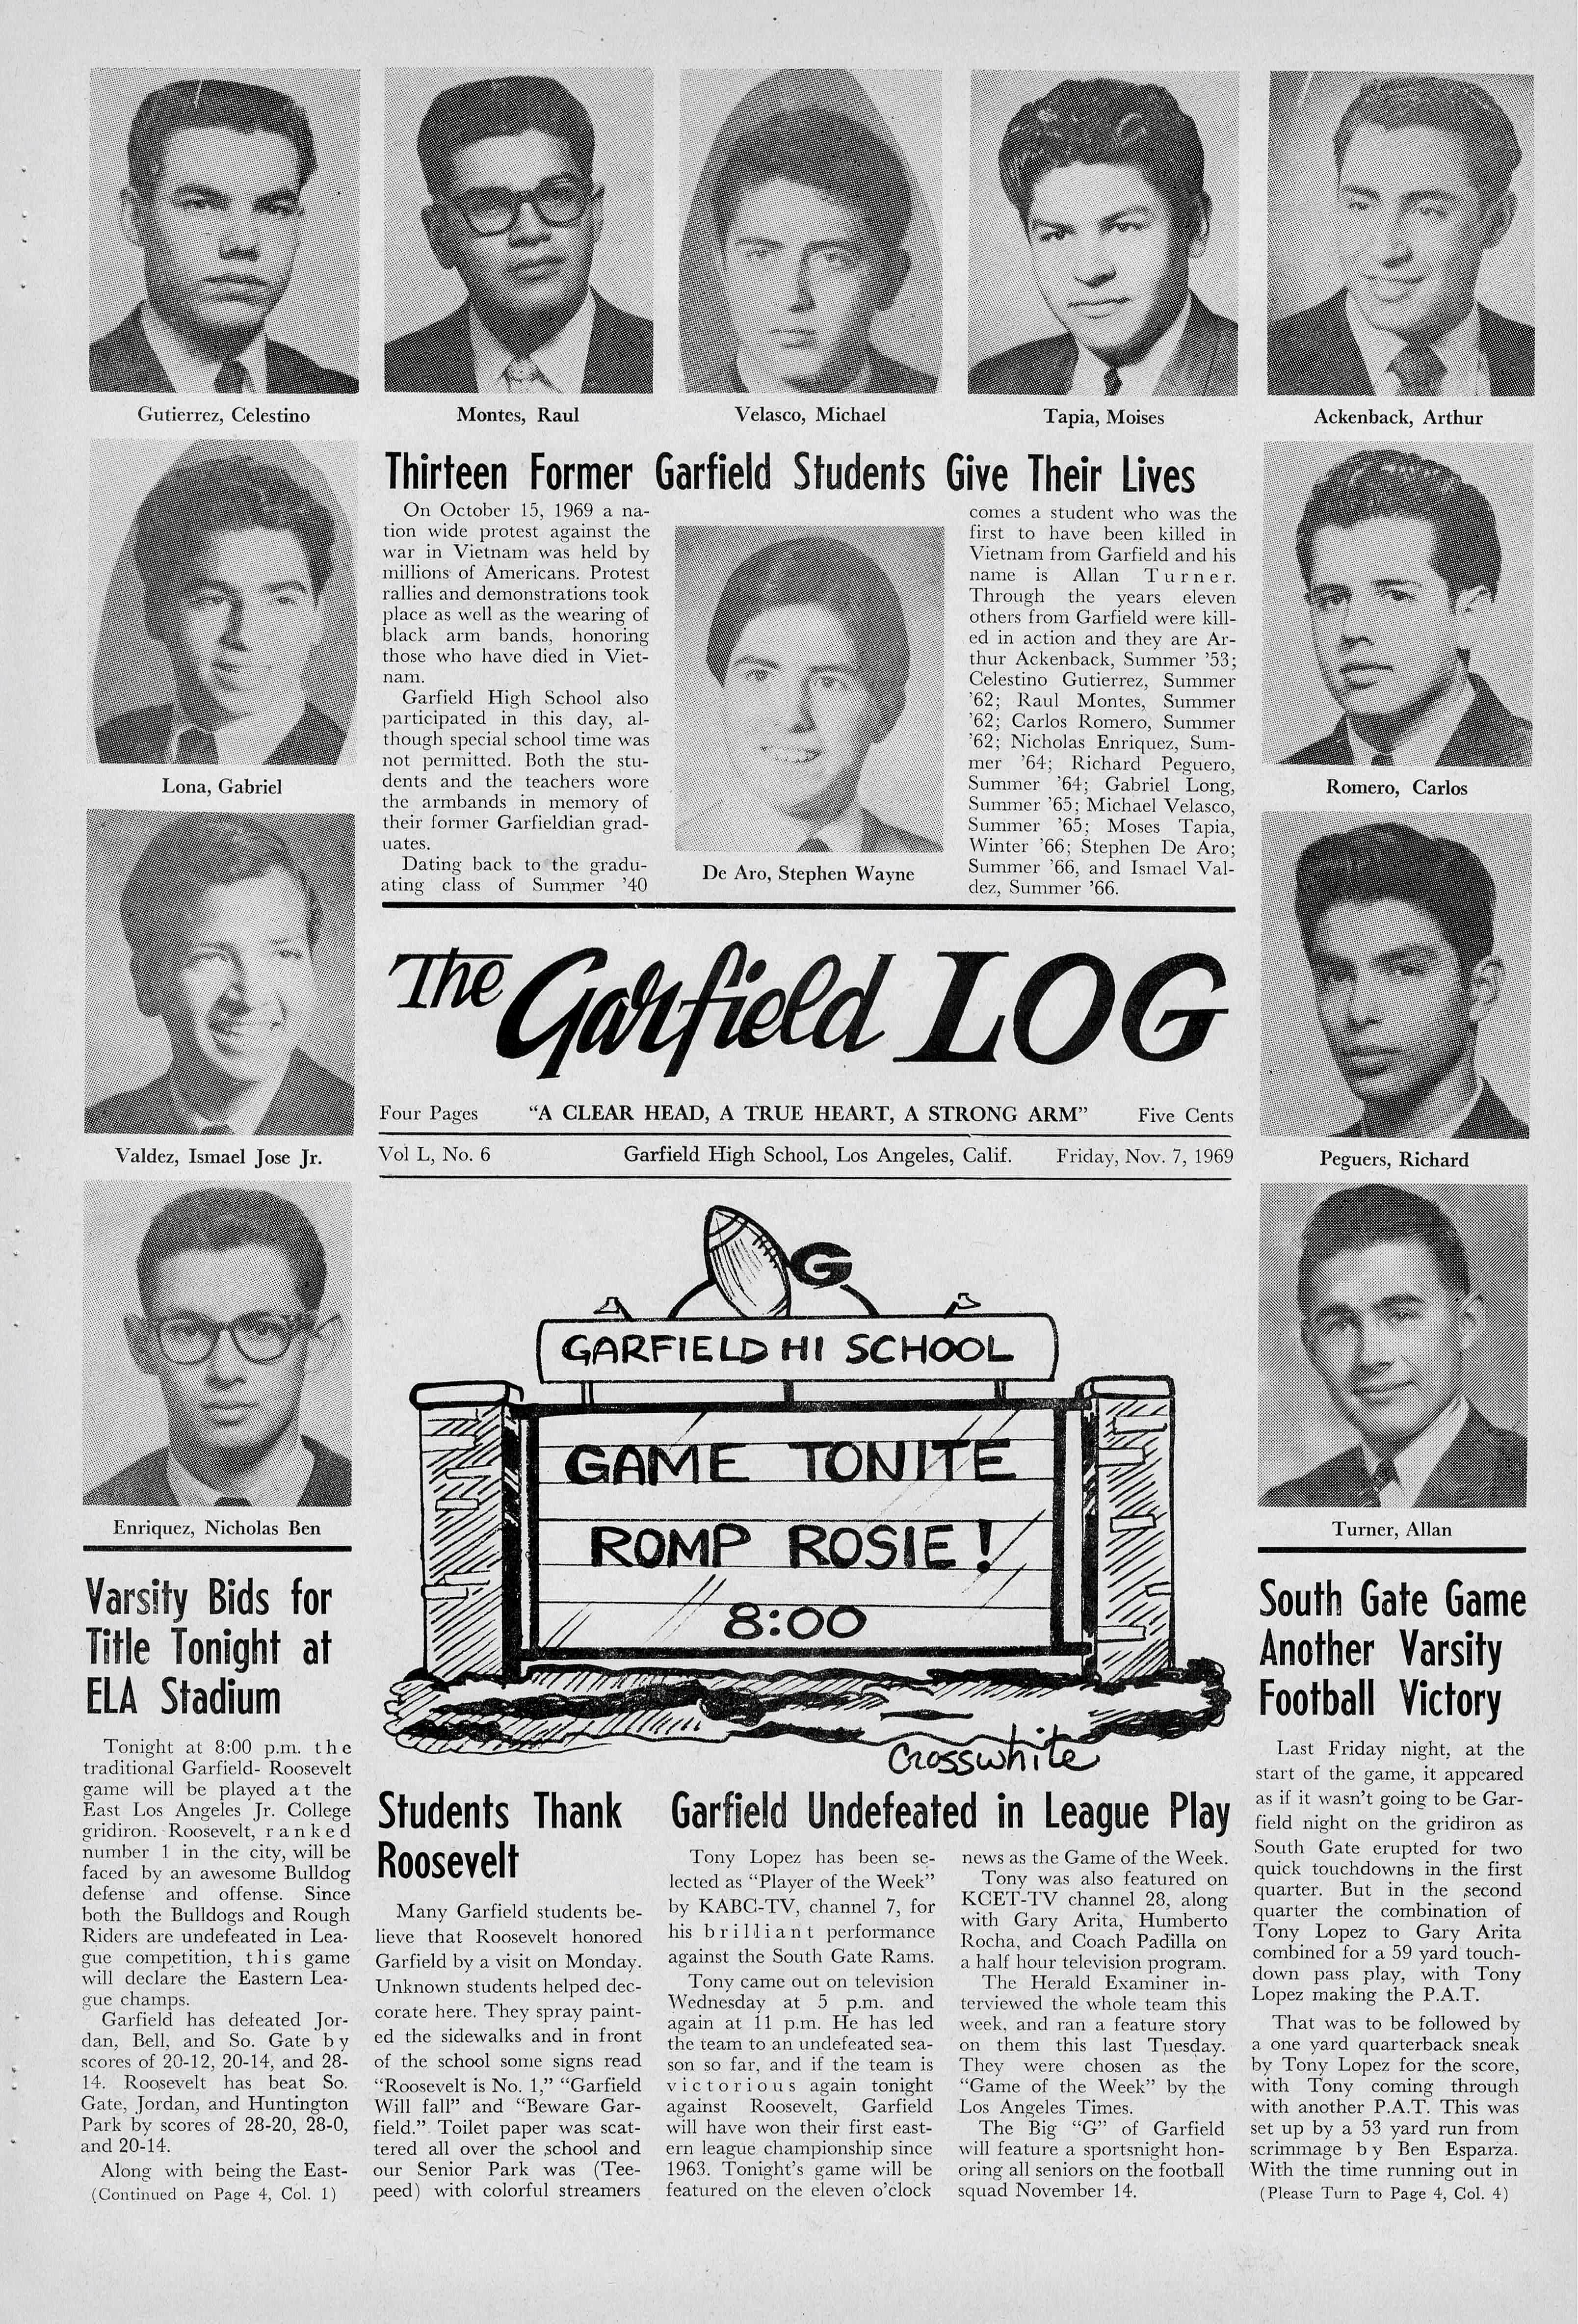 Garfield Log 1969 showing students killed in Korea and Vietnam